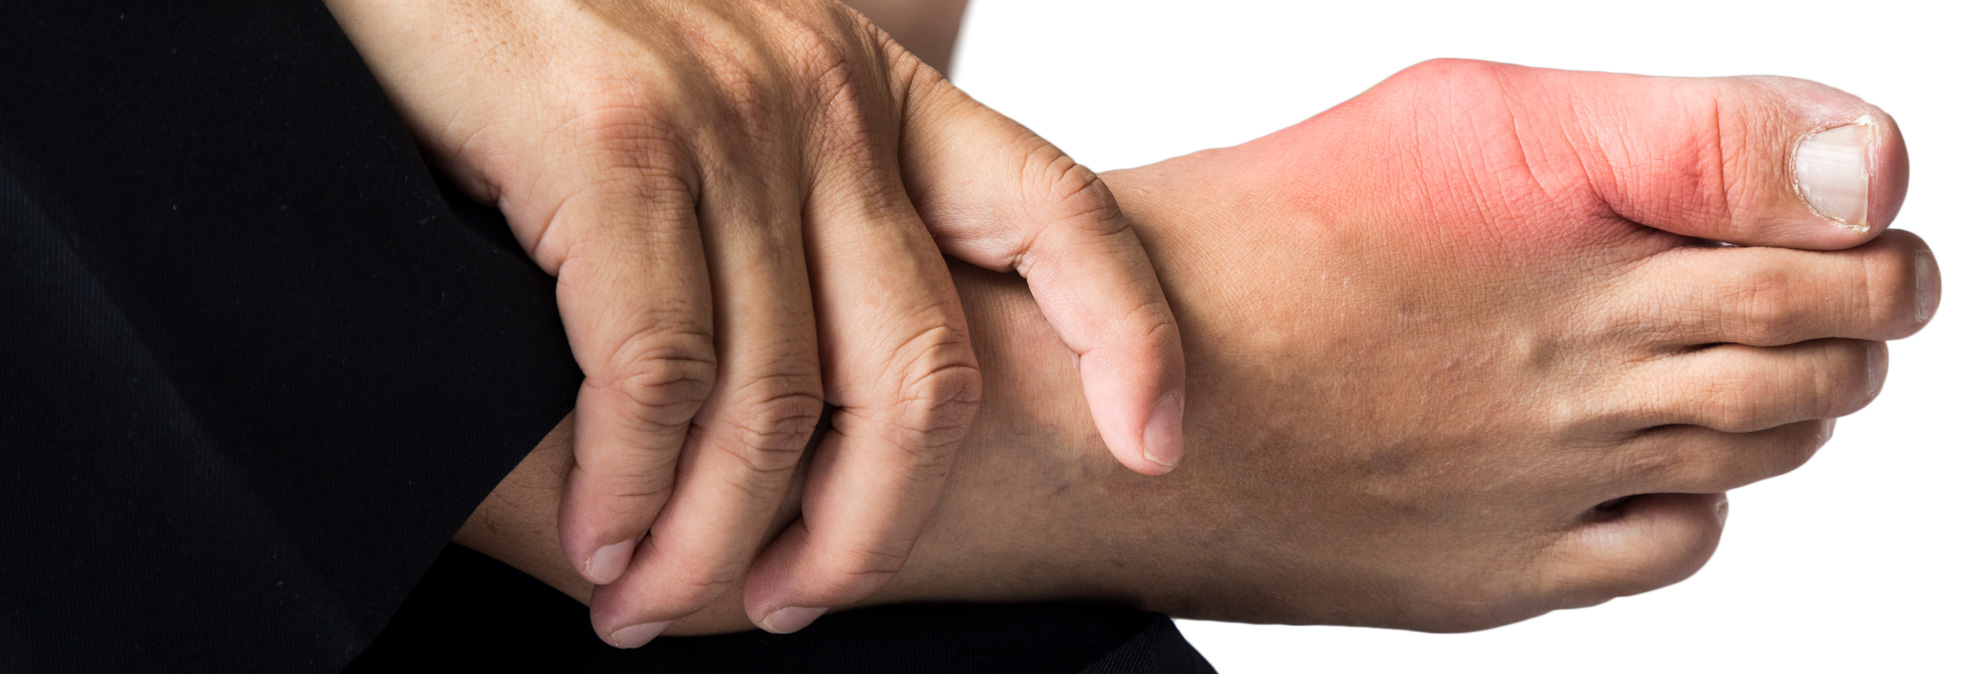 Gout Treatment Is Questioned in New Medical Guidelines